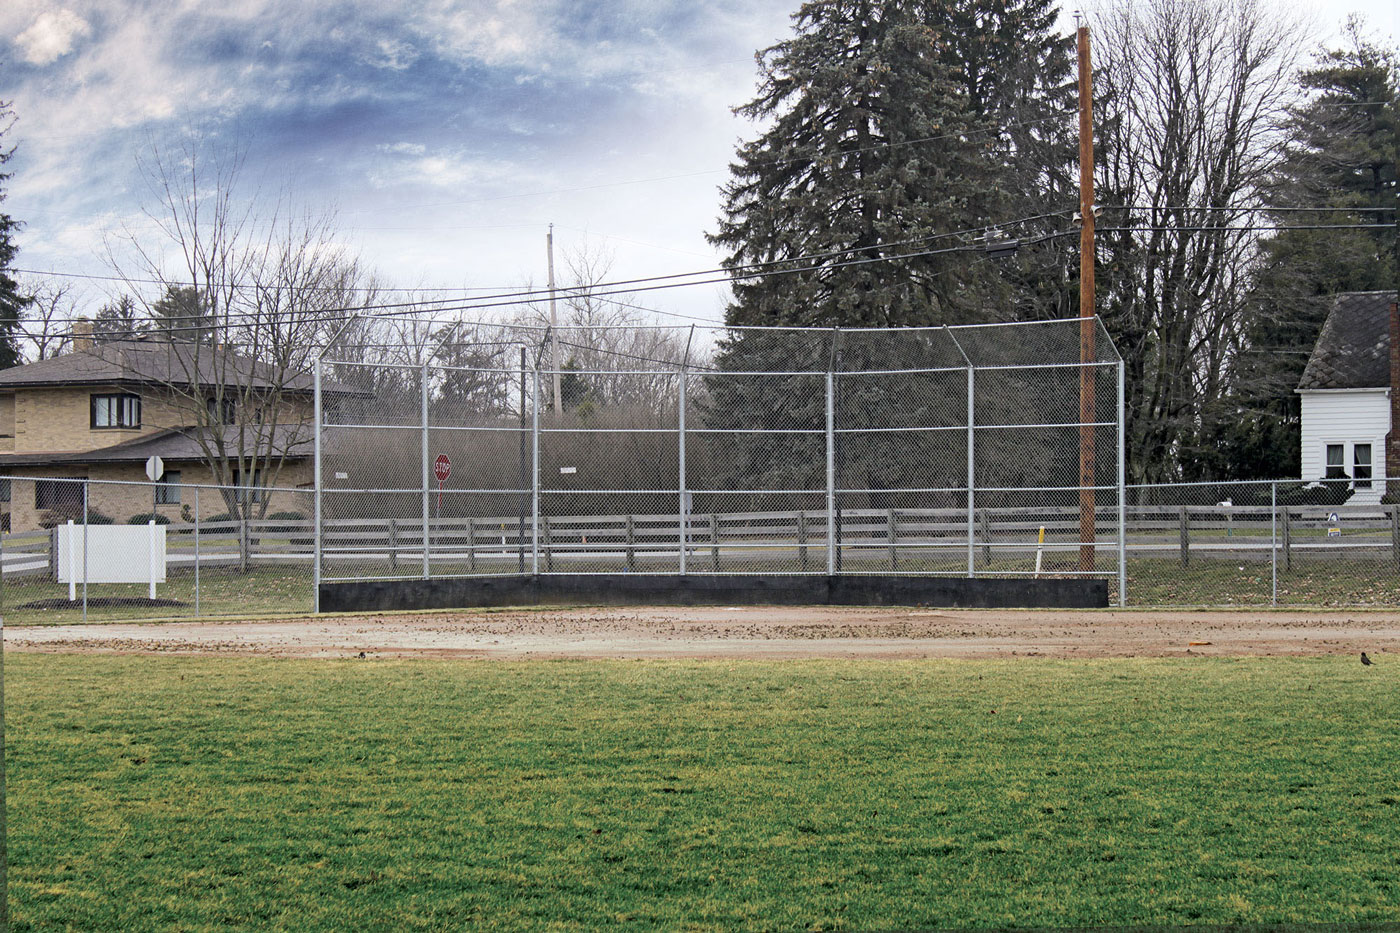 recreational baseball backstop chain link fence playground fence strauss fence norwich ohio